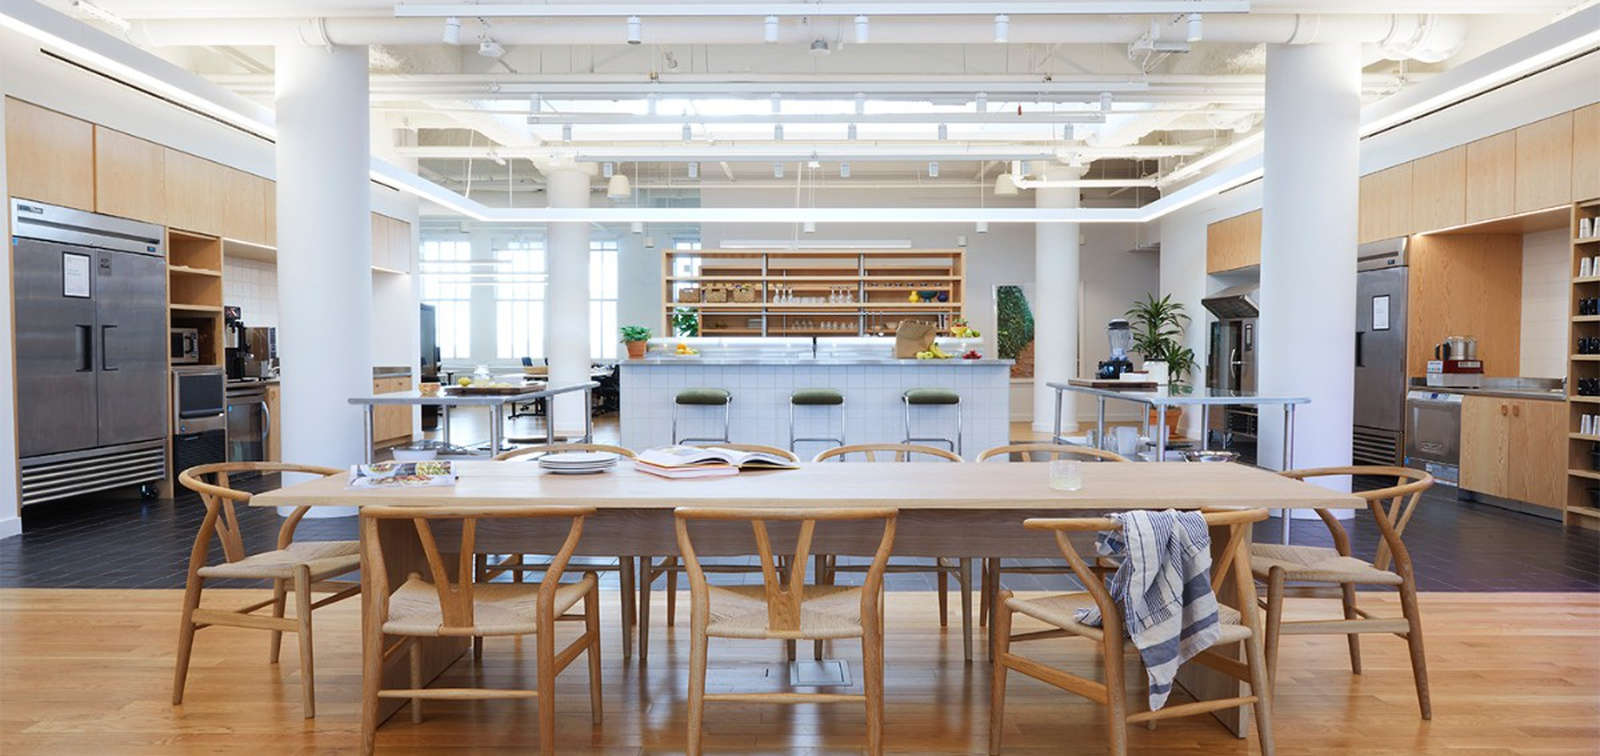 WeWork launches Food Labs in NYC amid struggles